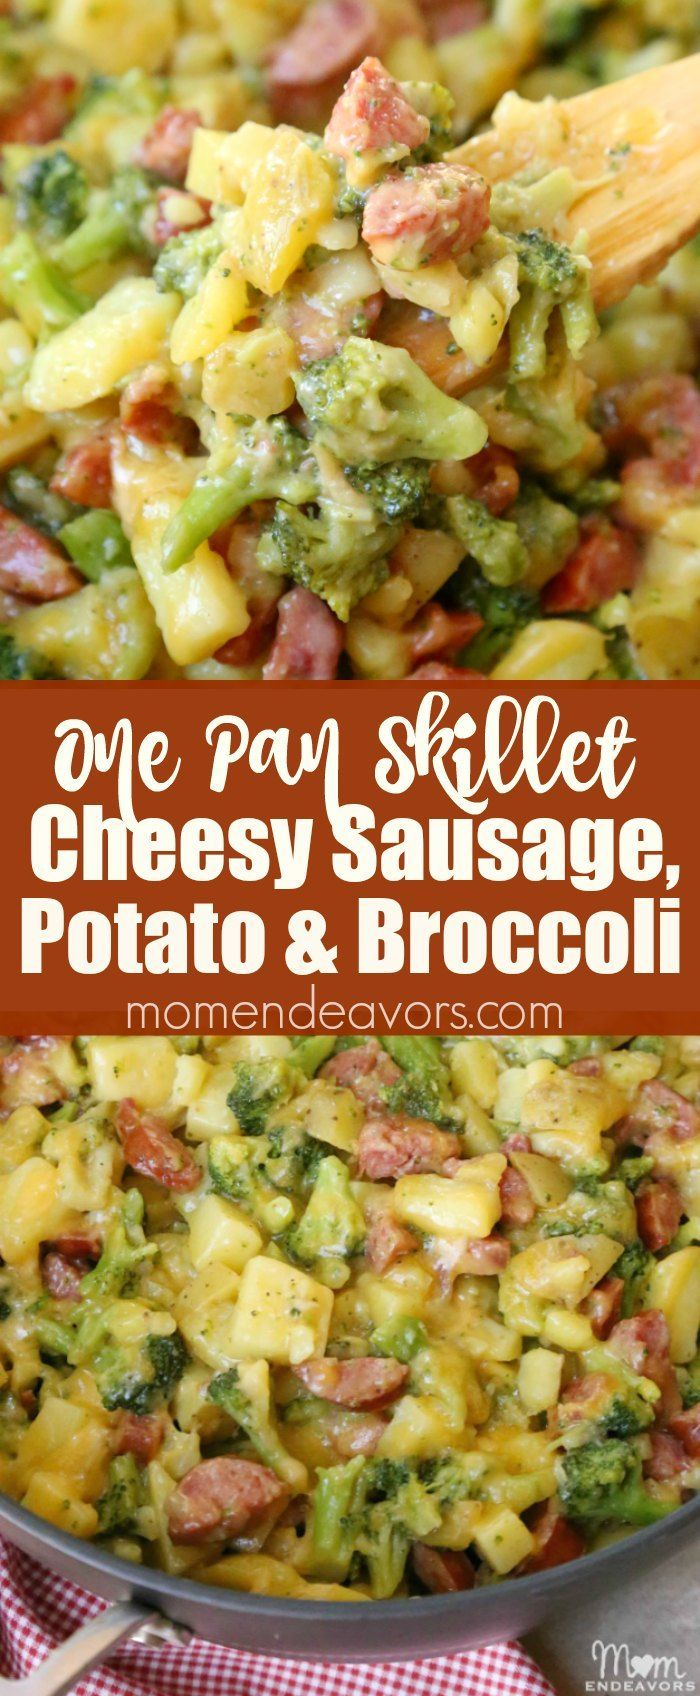 Cheesy Sausage Potato And Broccoli Skillet An Easy One Pan Meal Recipe Sponsored Easy Sausage Recipes Smoked Sausage Recipes Johnsonville Sausage Recipes